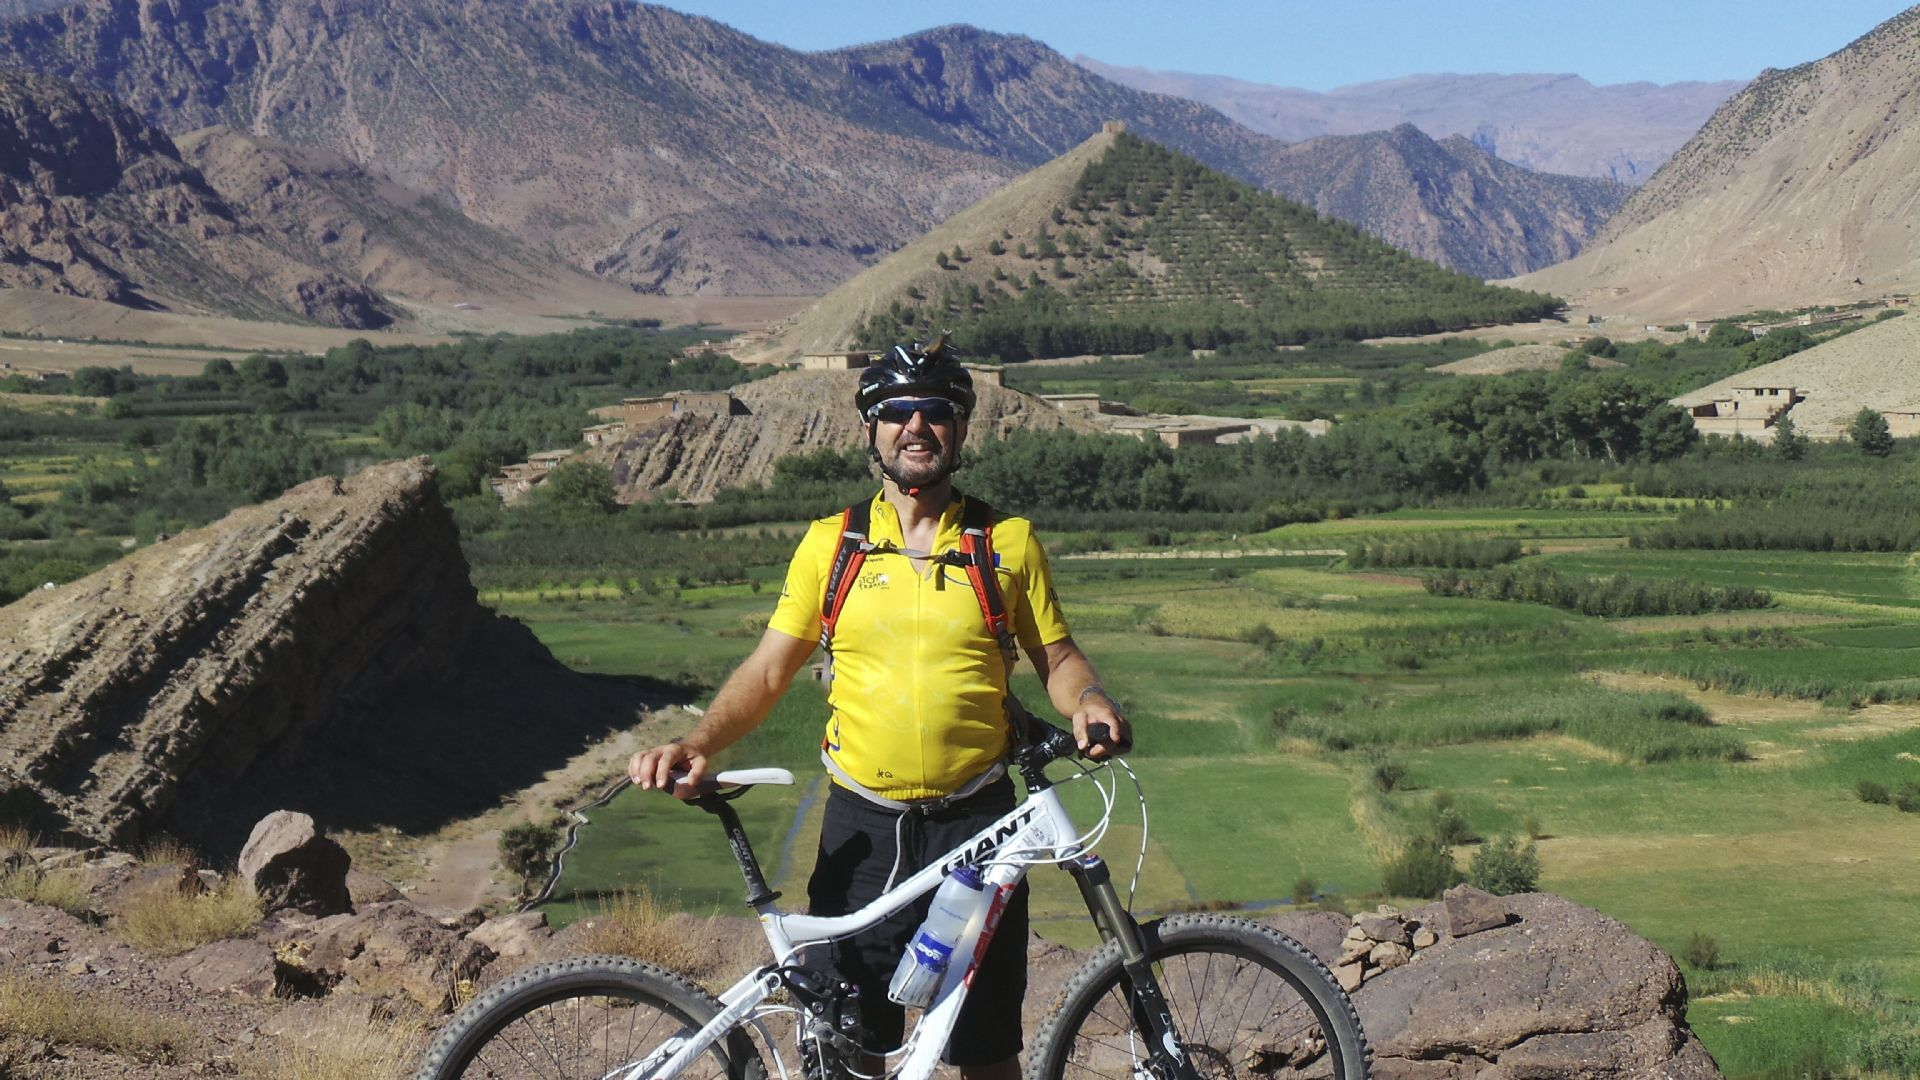 _Customer_106433_19830.jpg - Morocco - High Atlas Traverse - Guided Mountain Bike Holiday - Mountain Biking